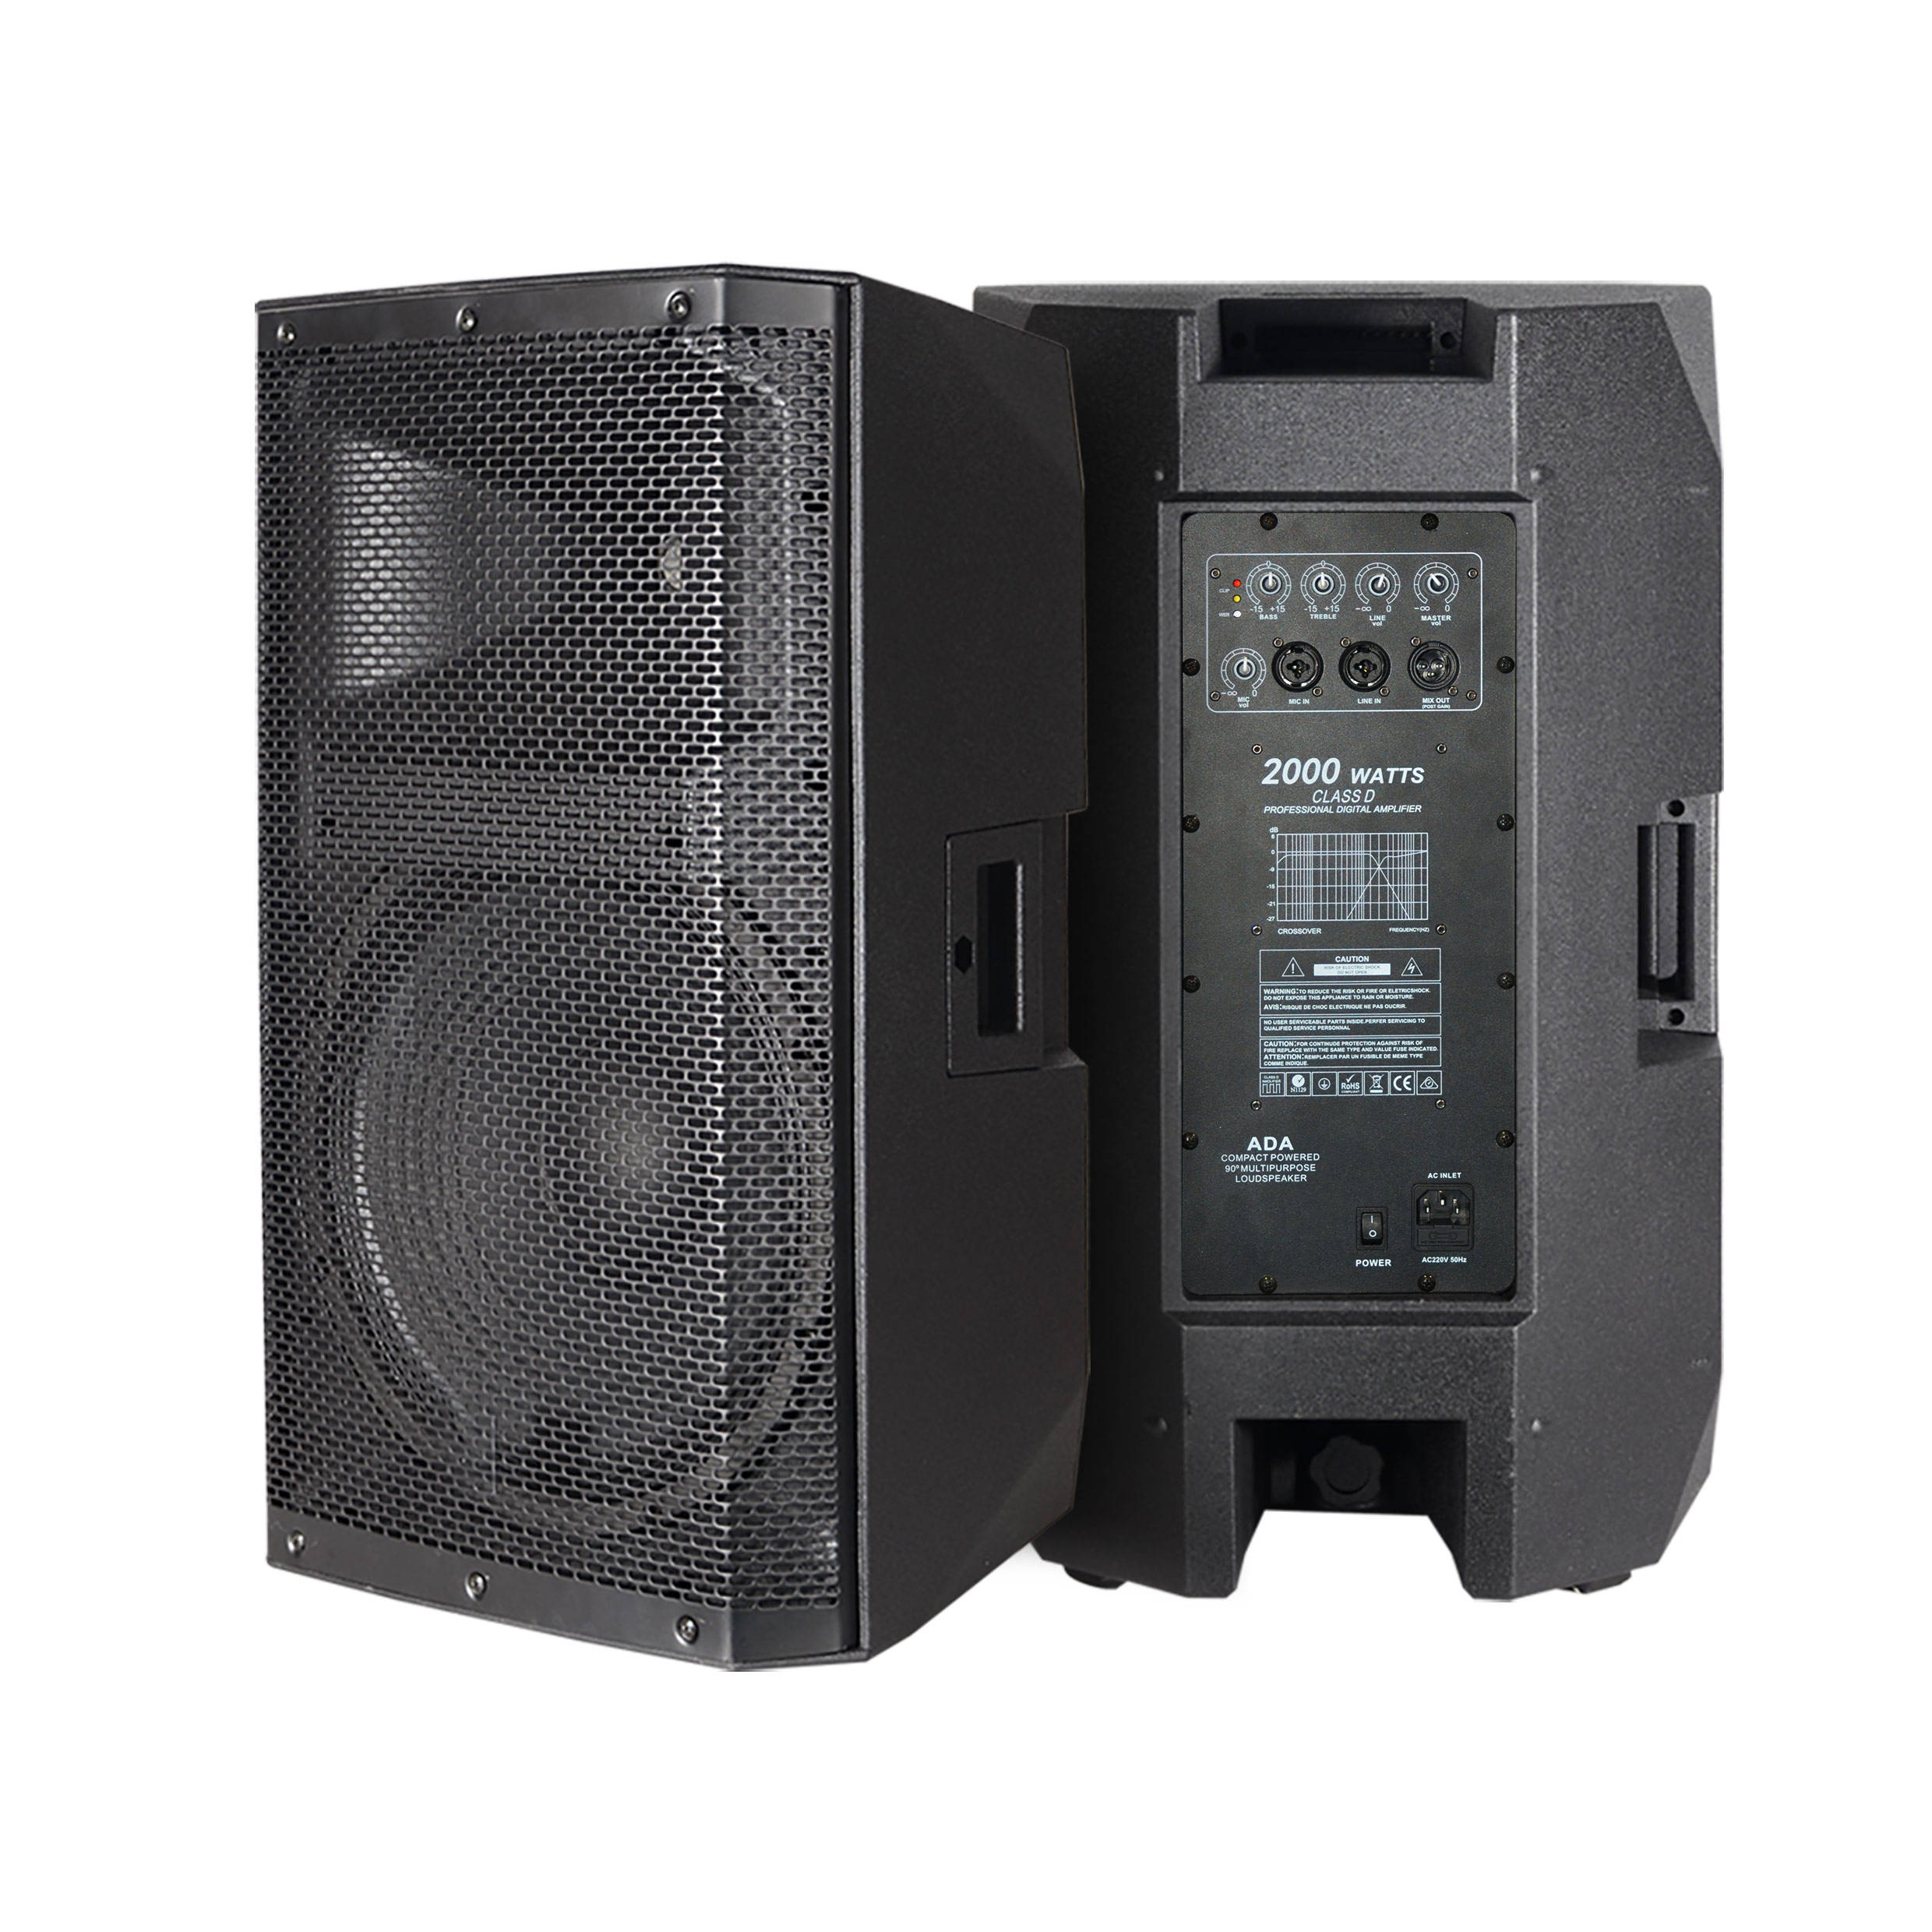 "RQSONIC CAC15ADA Professional P Audio 500W 15"" Inch Active Digital Powered Speaker Amplifier Plastic PA Speaker Sound System"